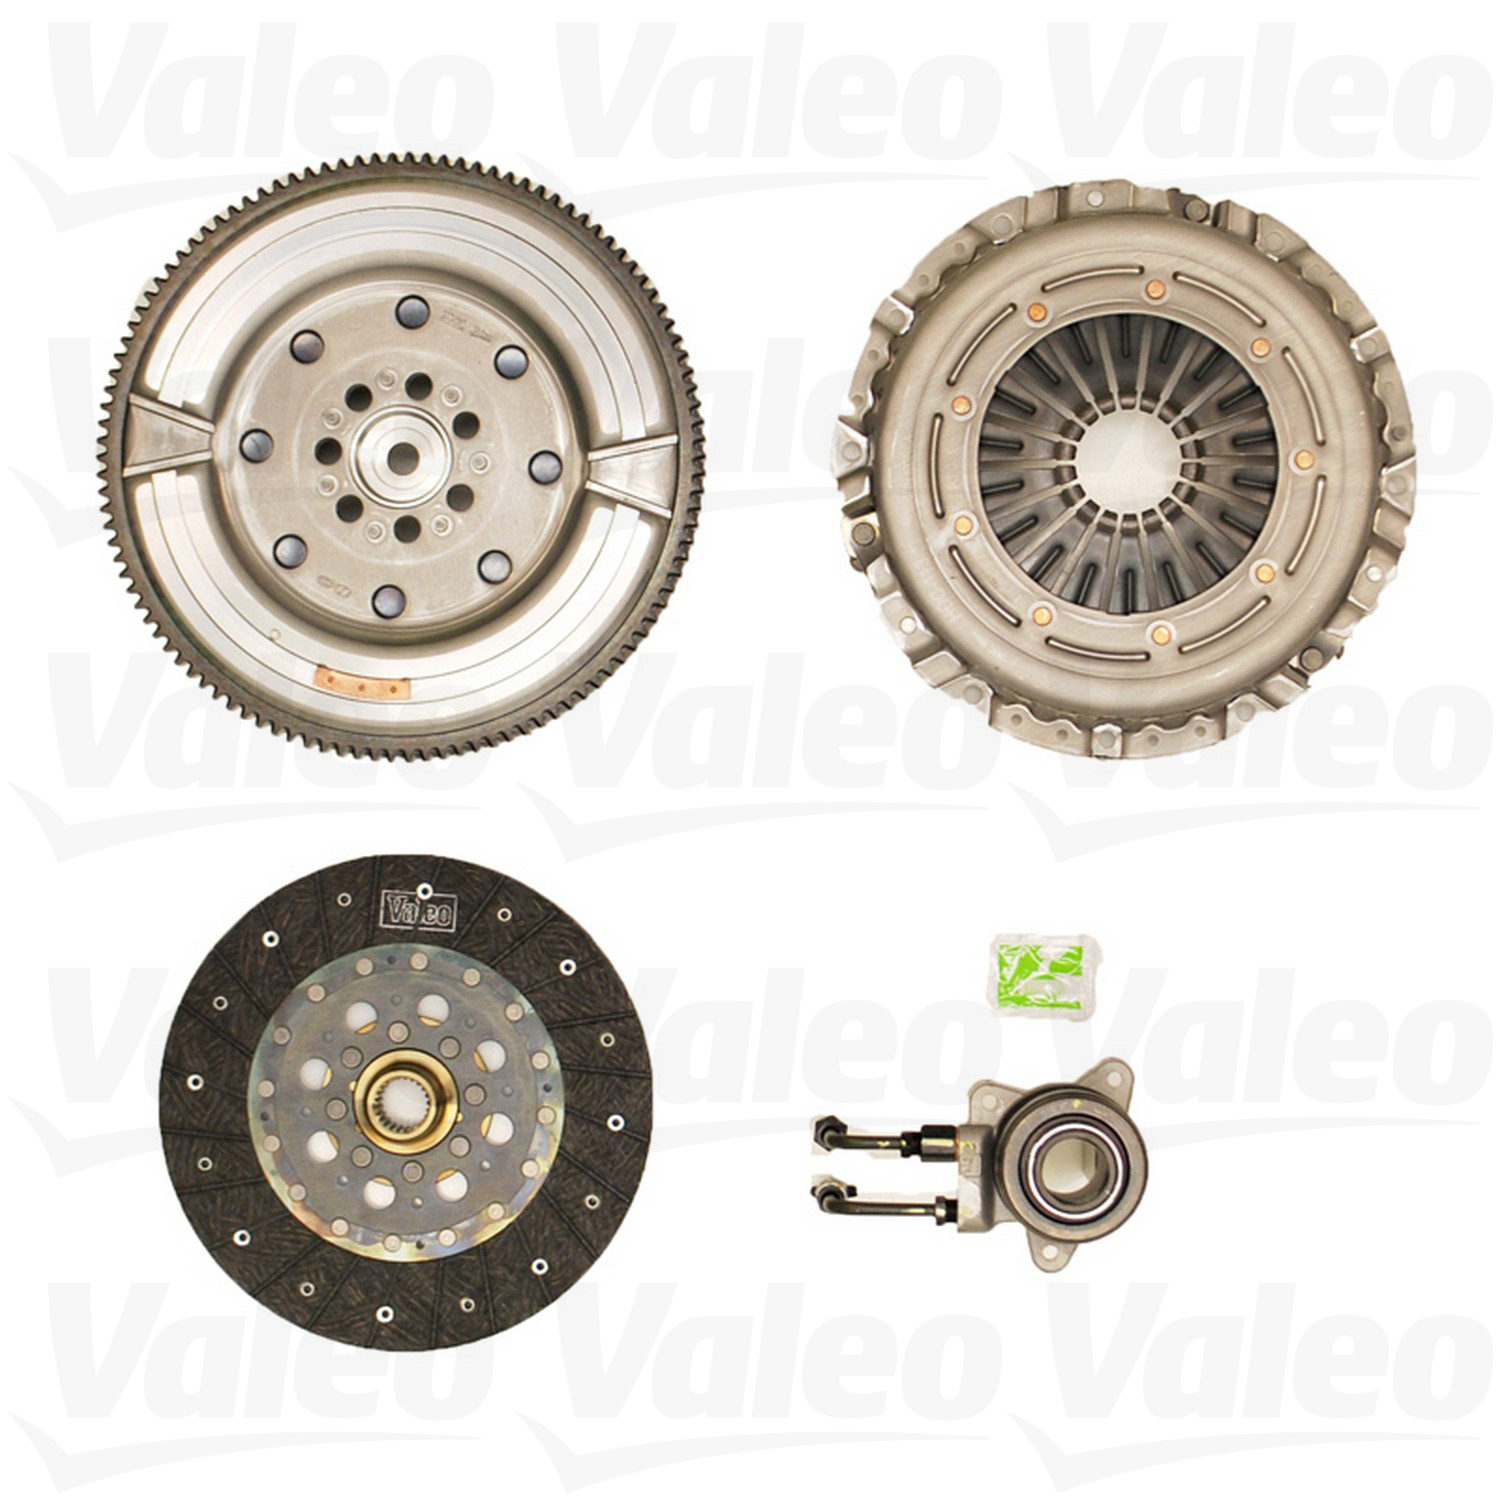 Transmission Clutch and Flywheel Kit